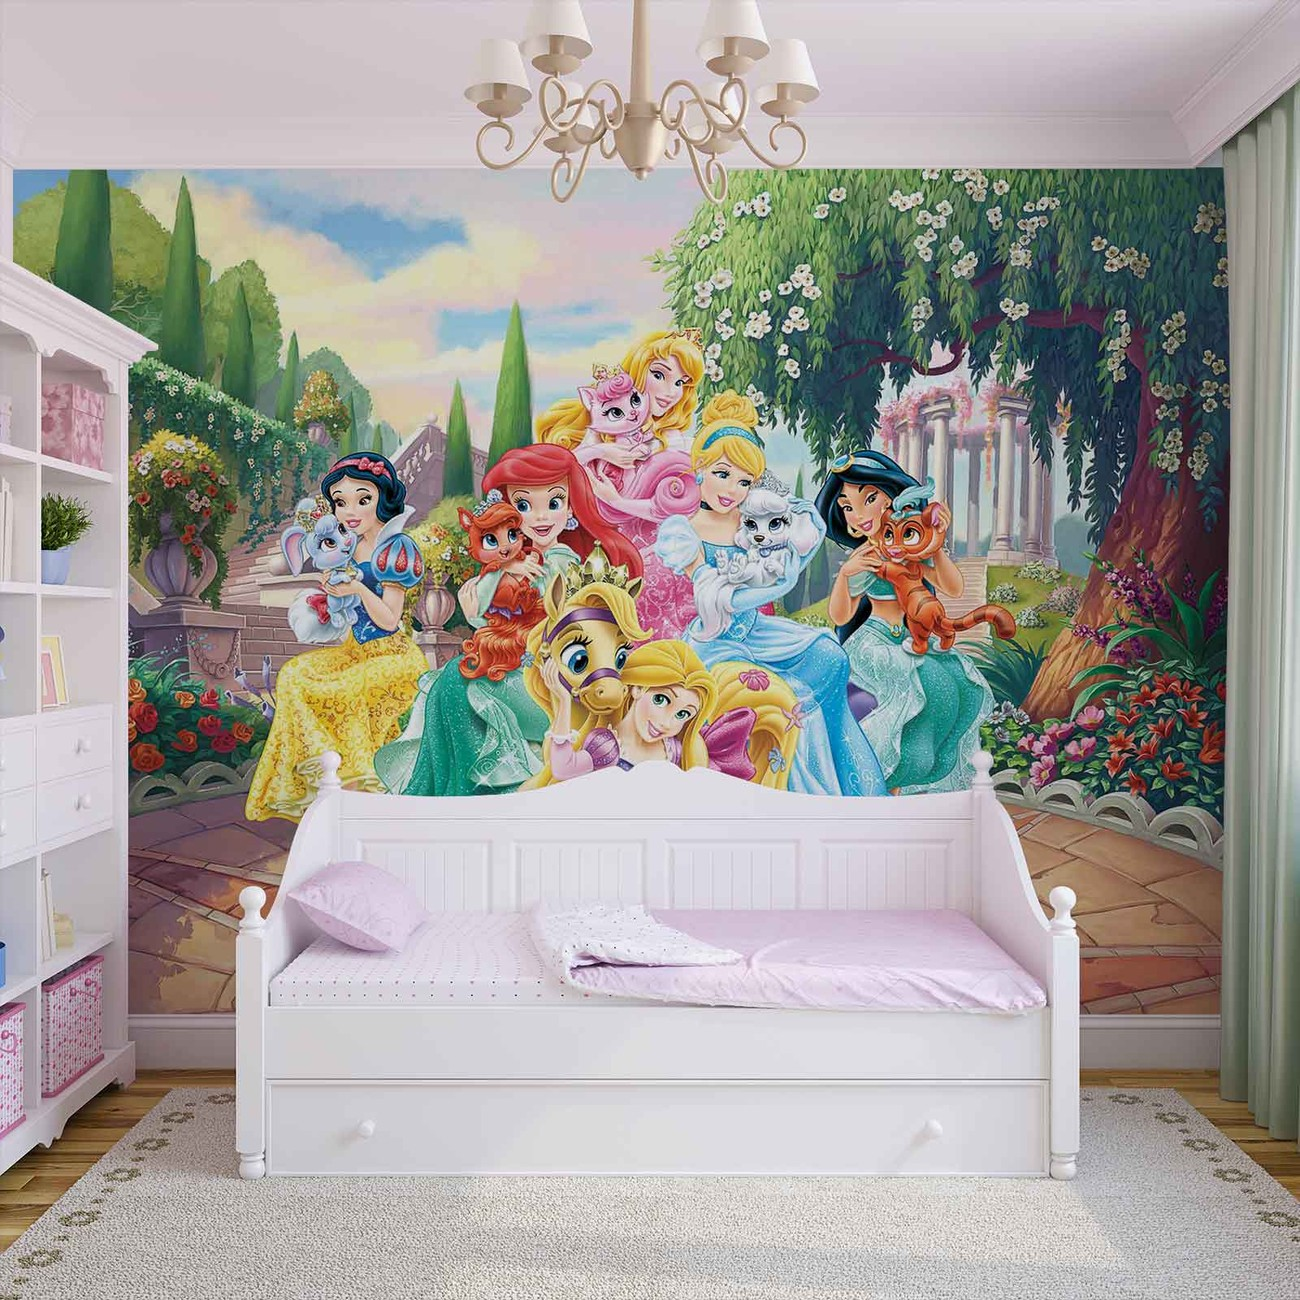 Disney princesses rapunzel ariel wall paper mural buy at for Disney princess wallpaper mural uk